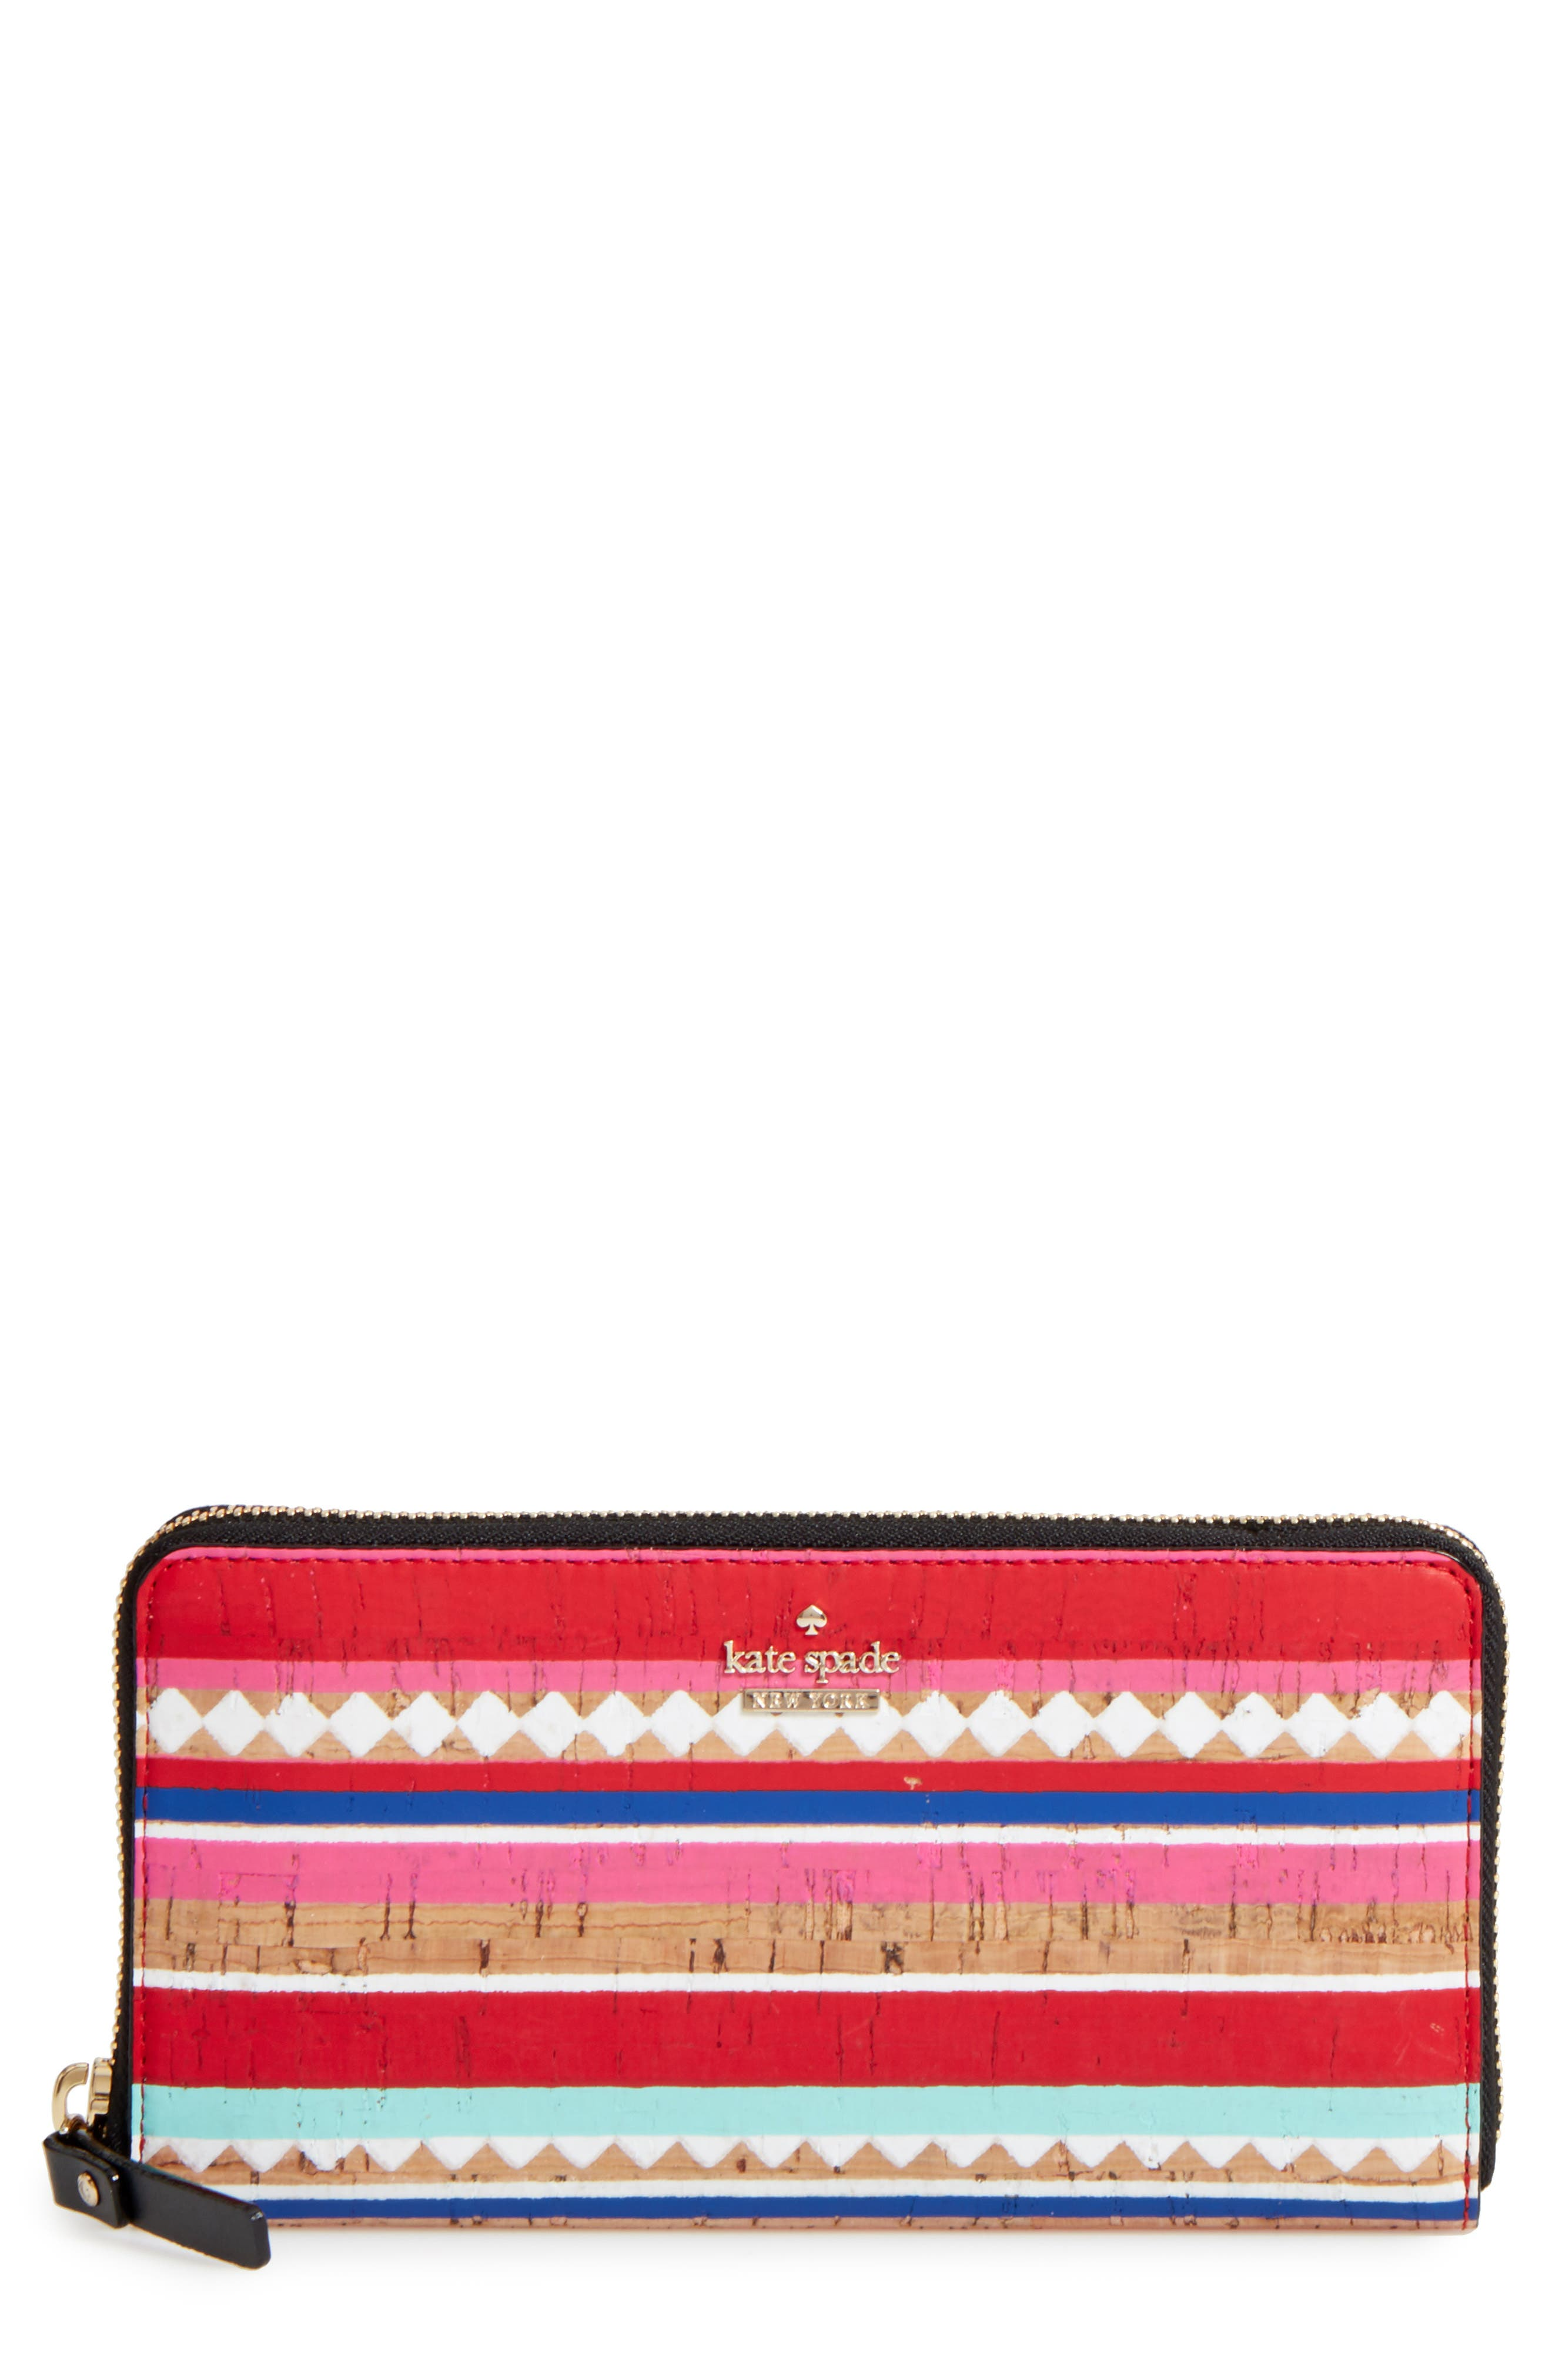 KATE SPADE NEW YORK campus lane - lacey wallet